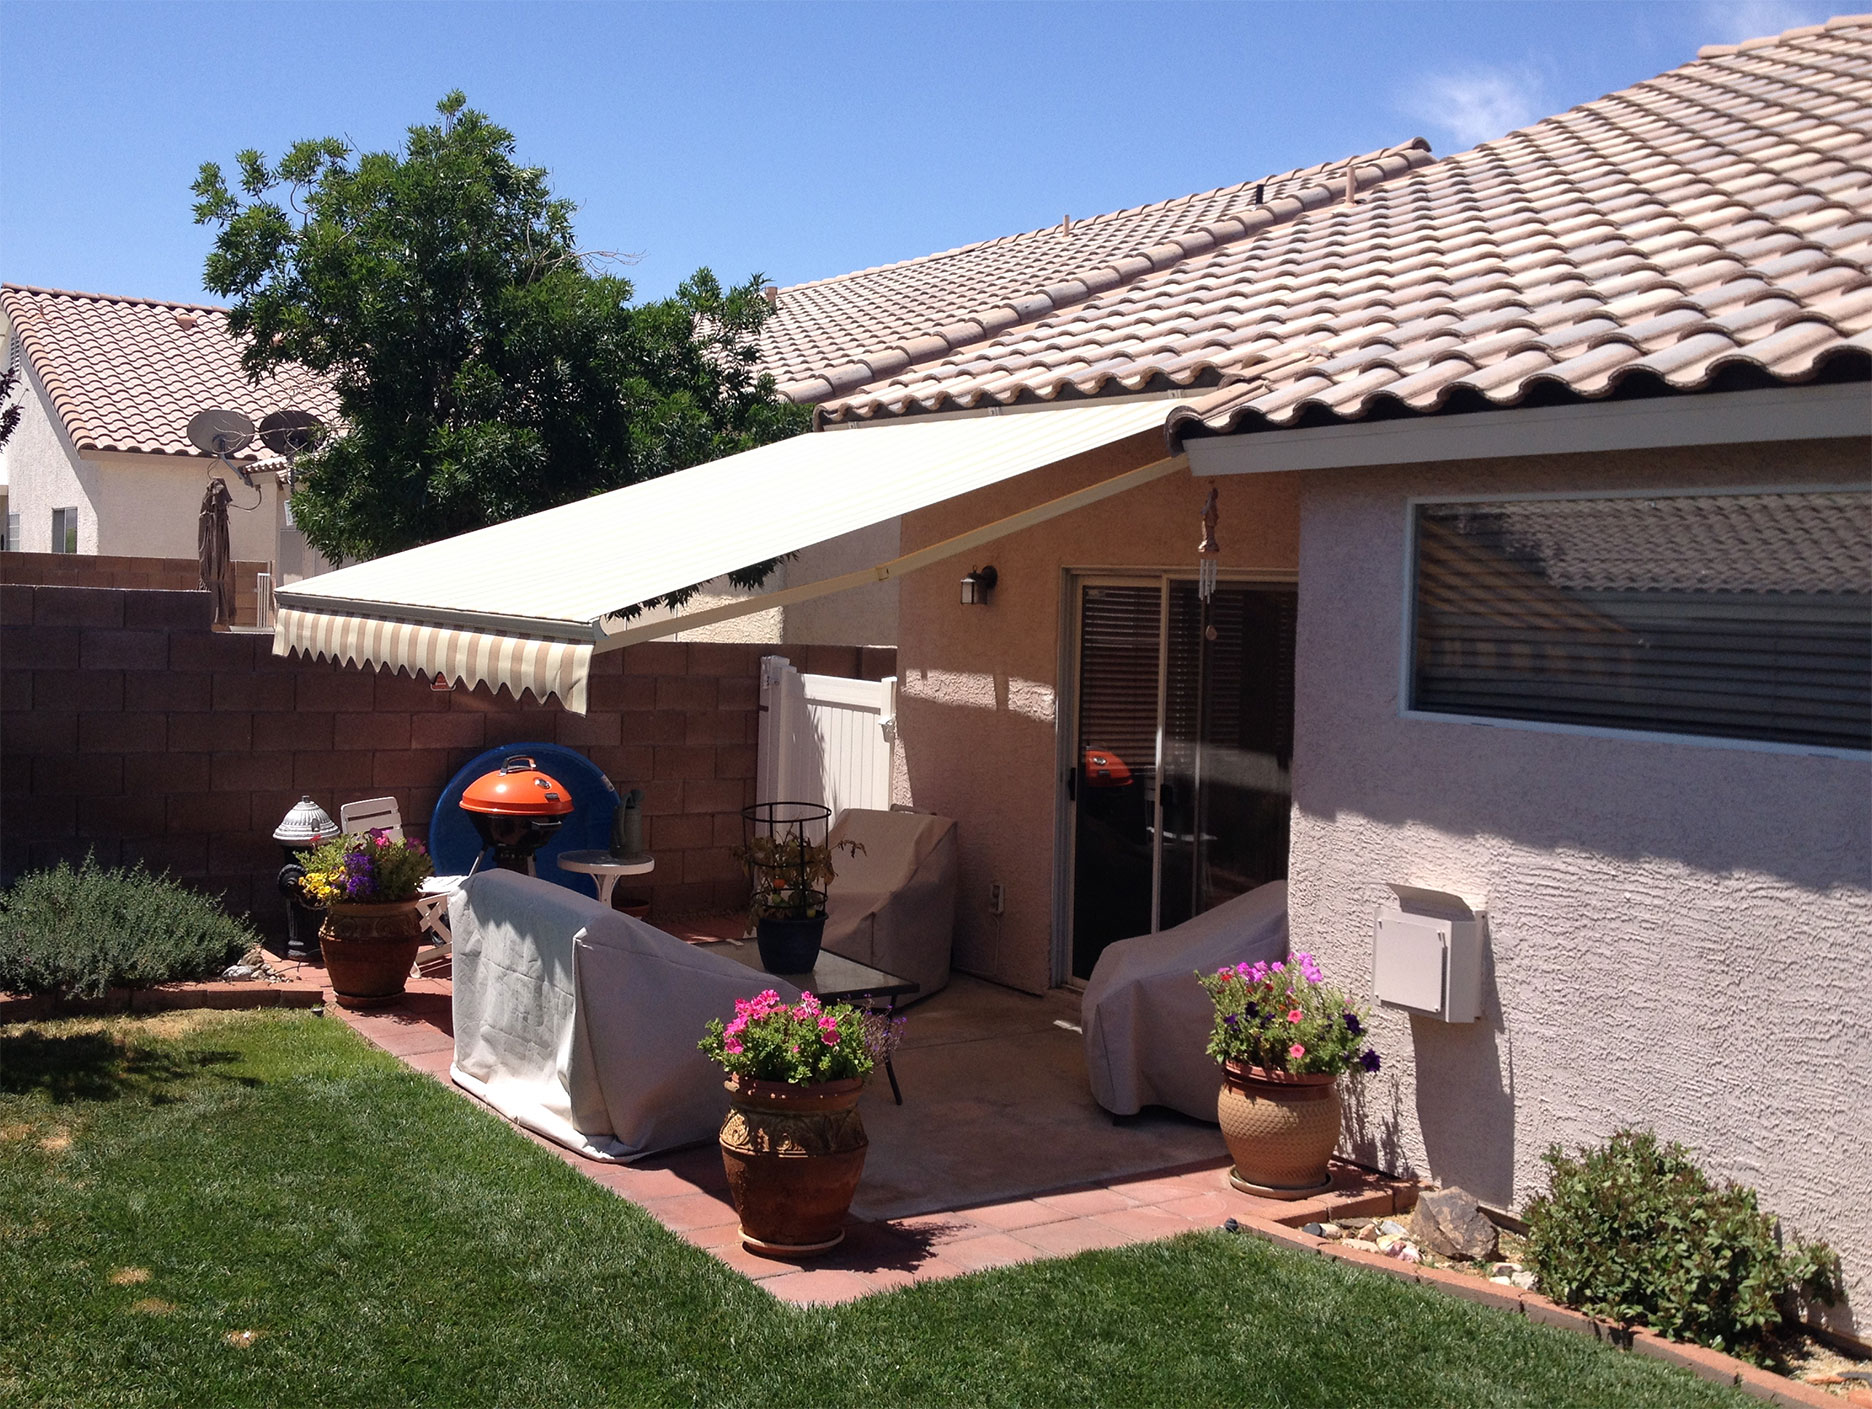 Sunesta awning - 4 Tips On How To Take Care Of Your Retractable Awning